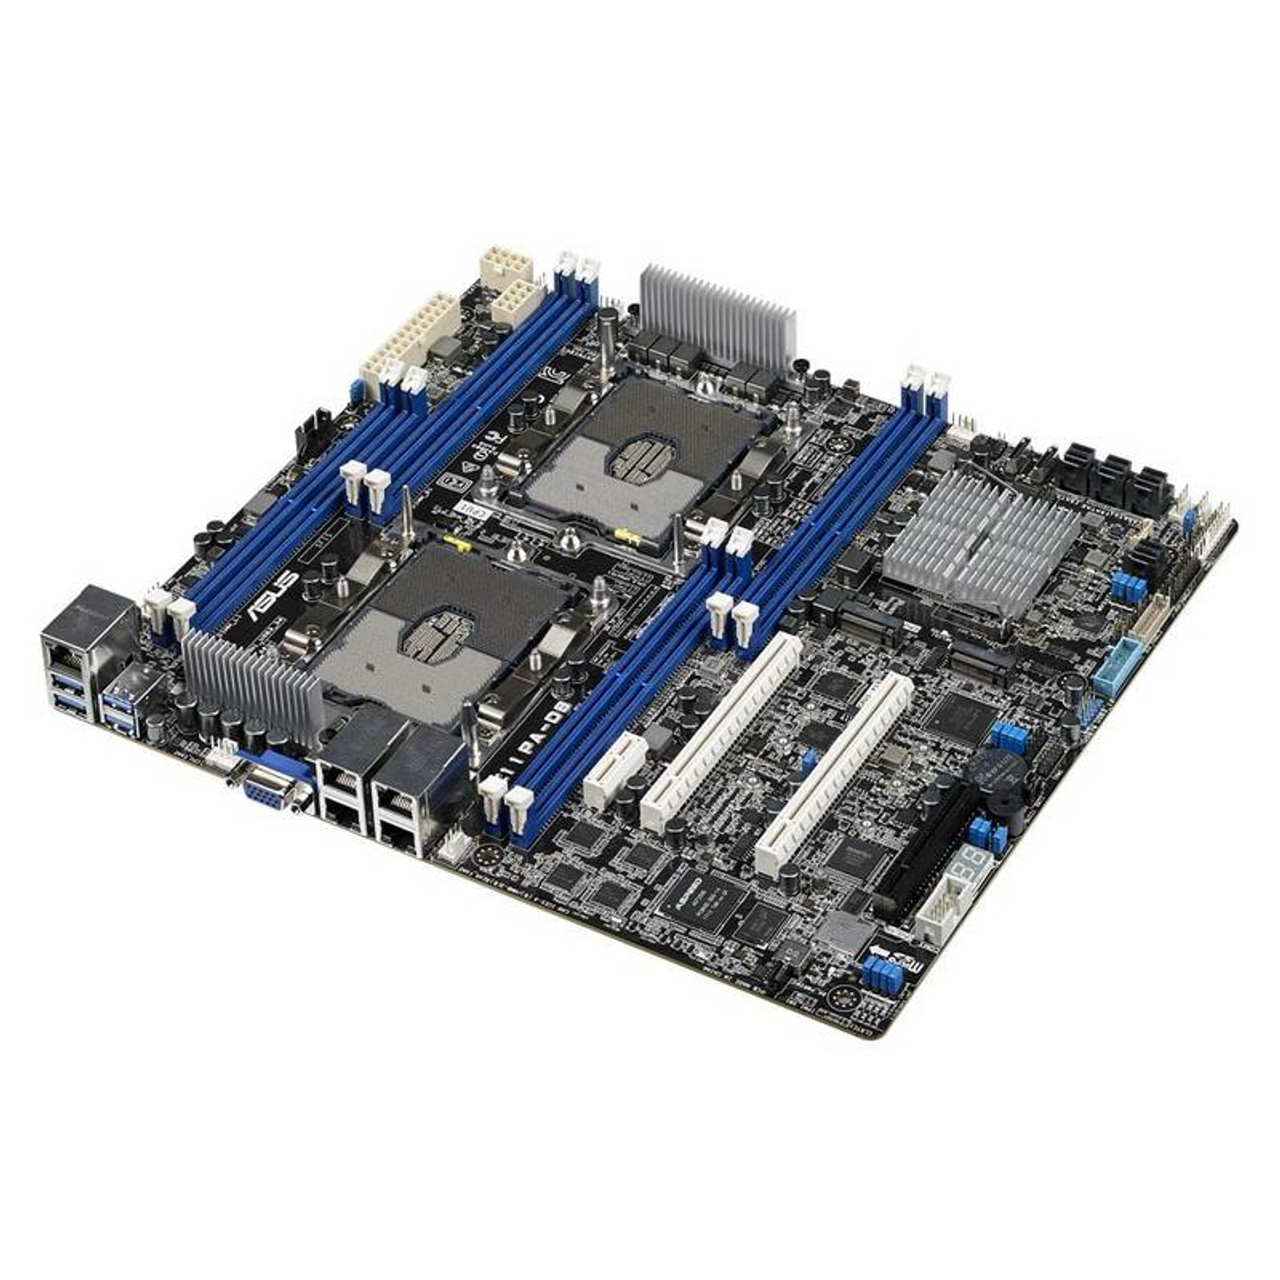 Image for Asus Z11PA-D8 Dual Socket LGA-3647 ATX Server Motherboard CX Computer Superstore